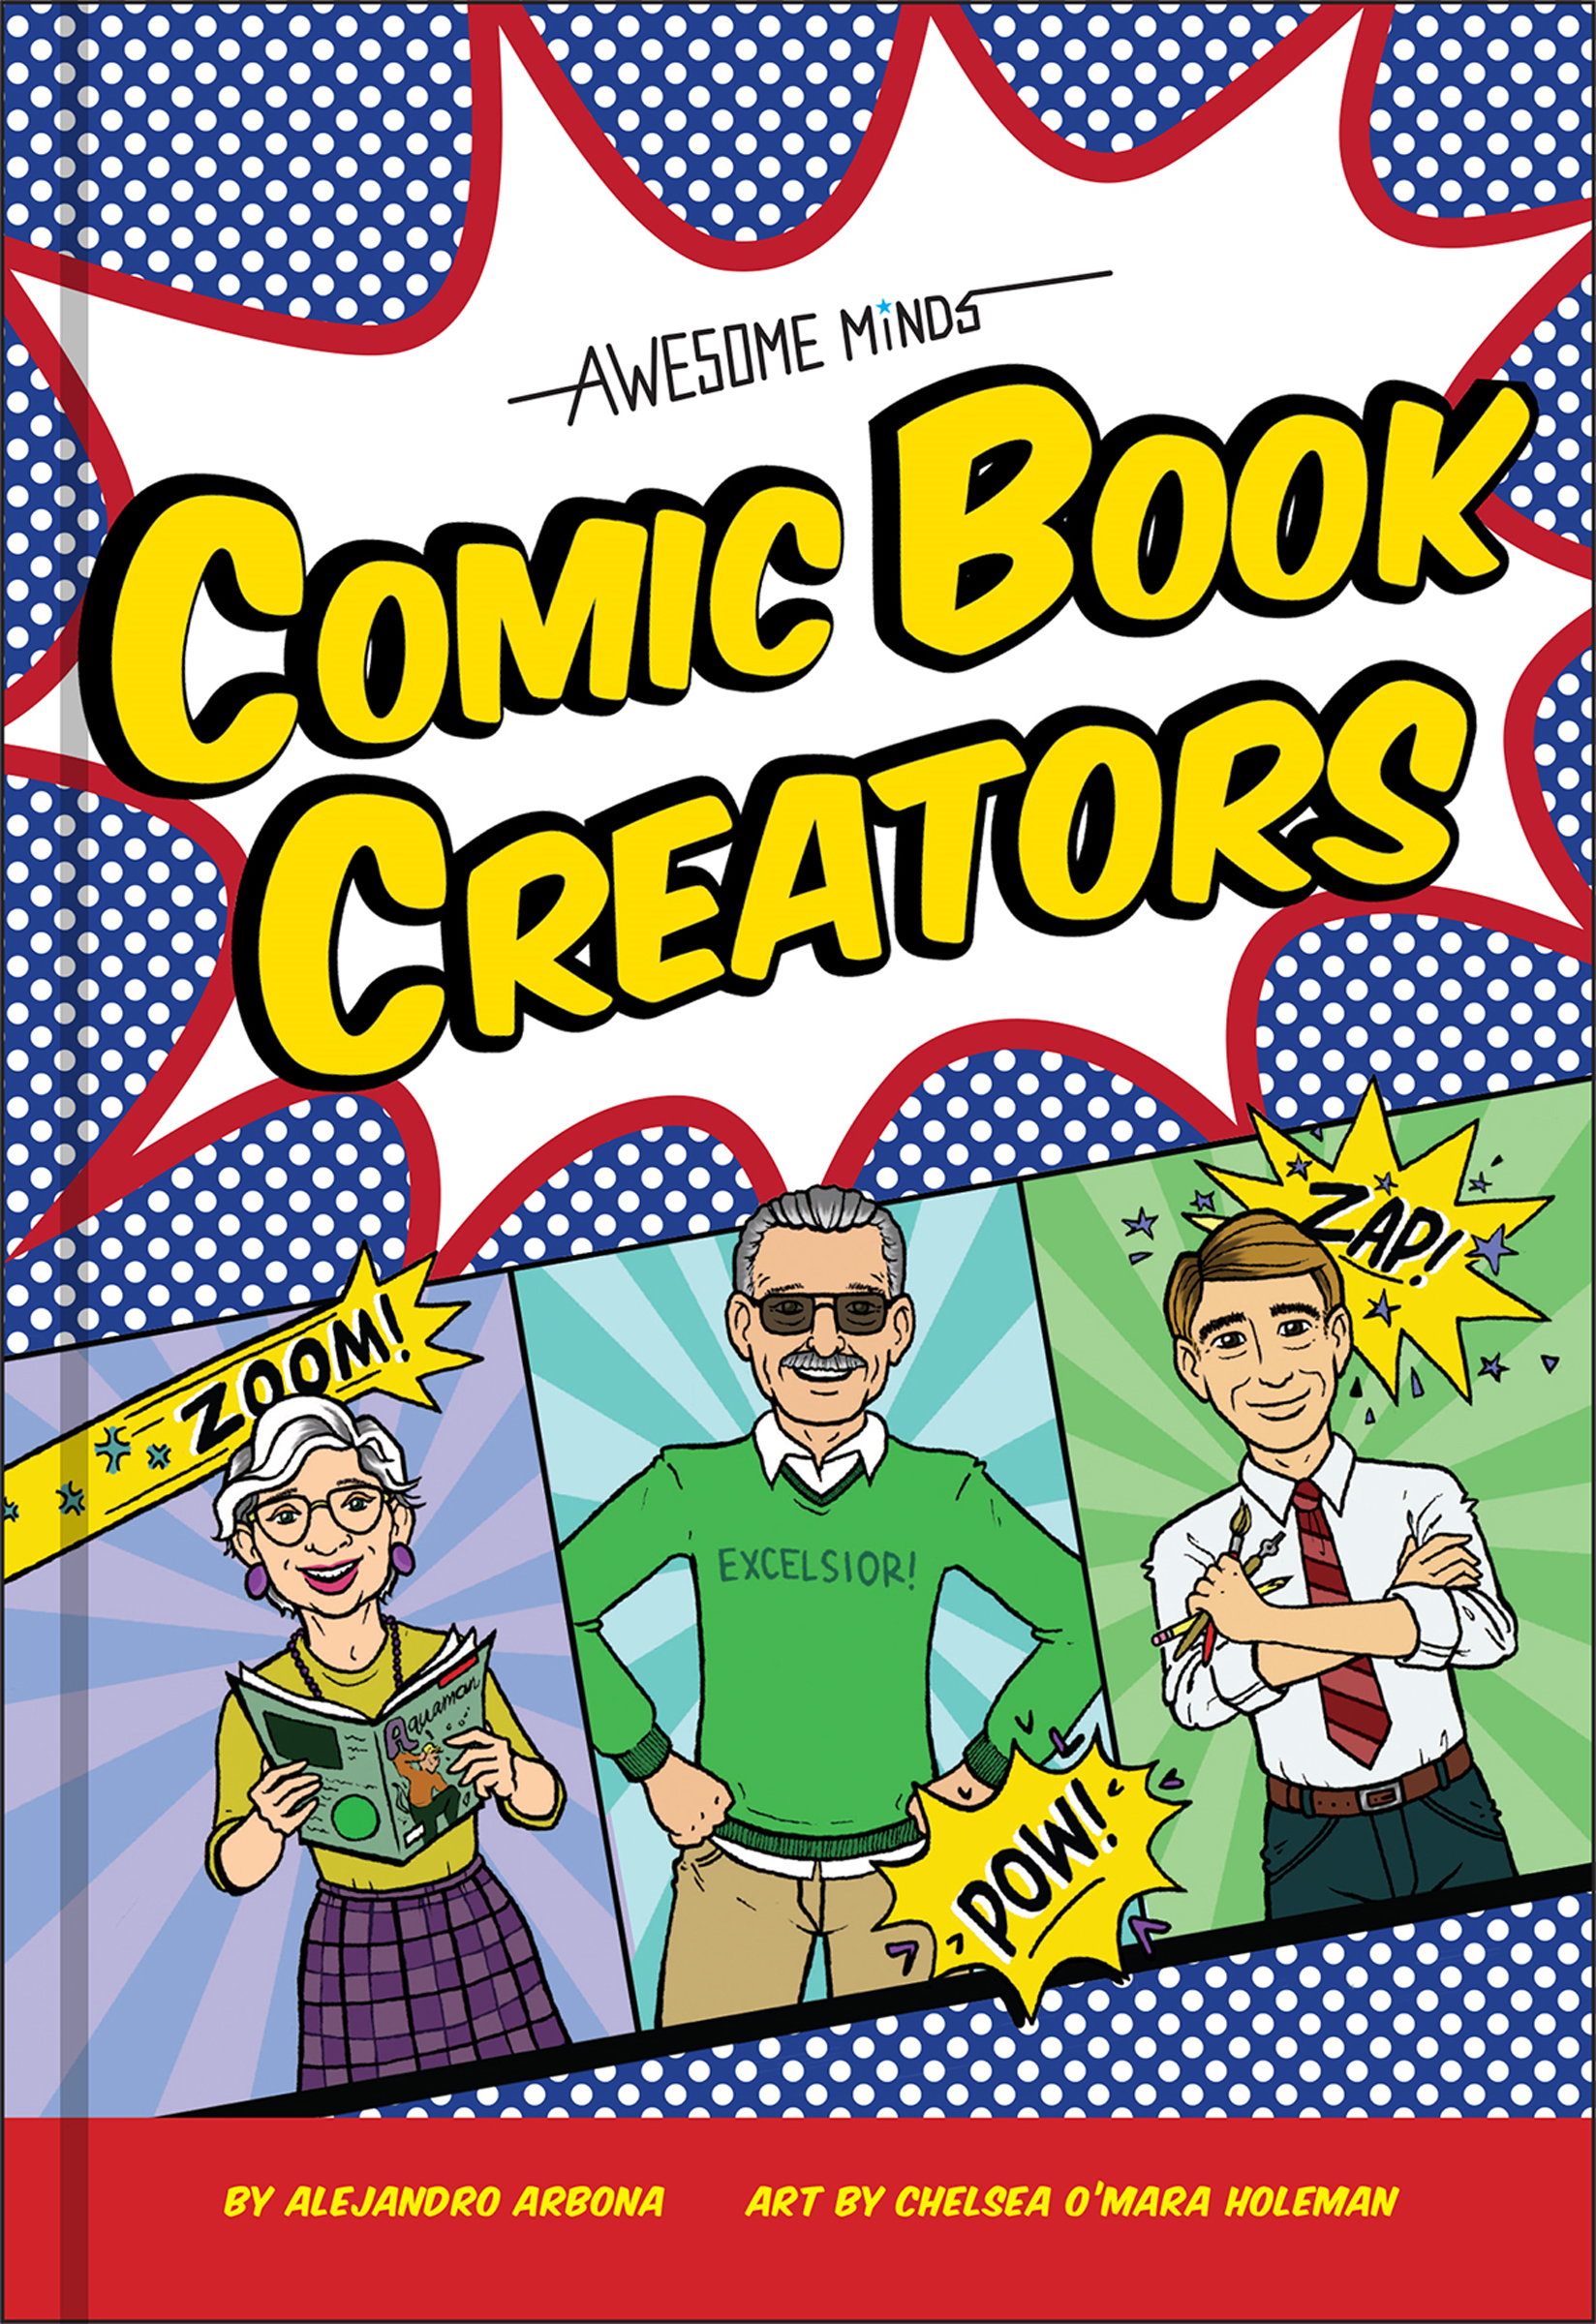 Awesome Minds: Comic Book Creators